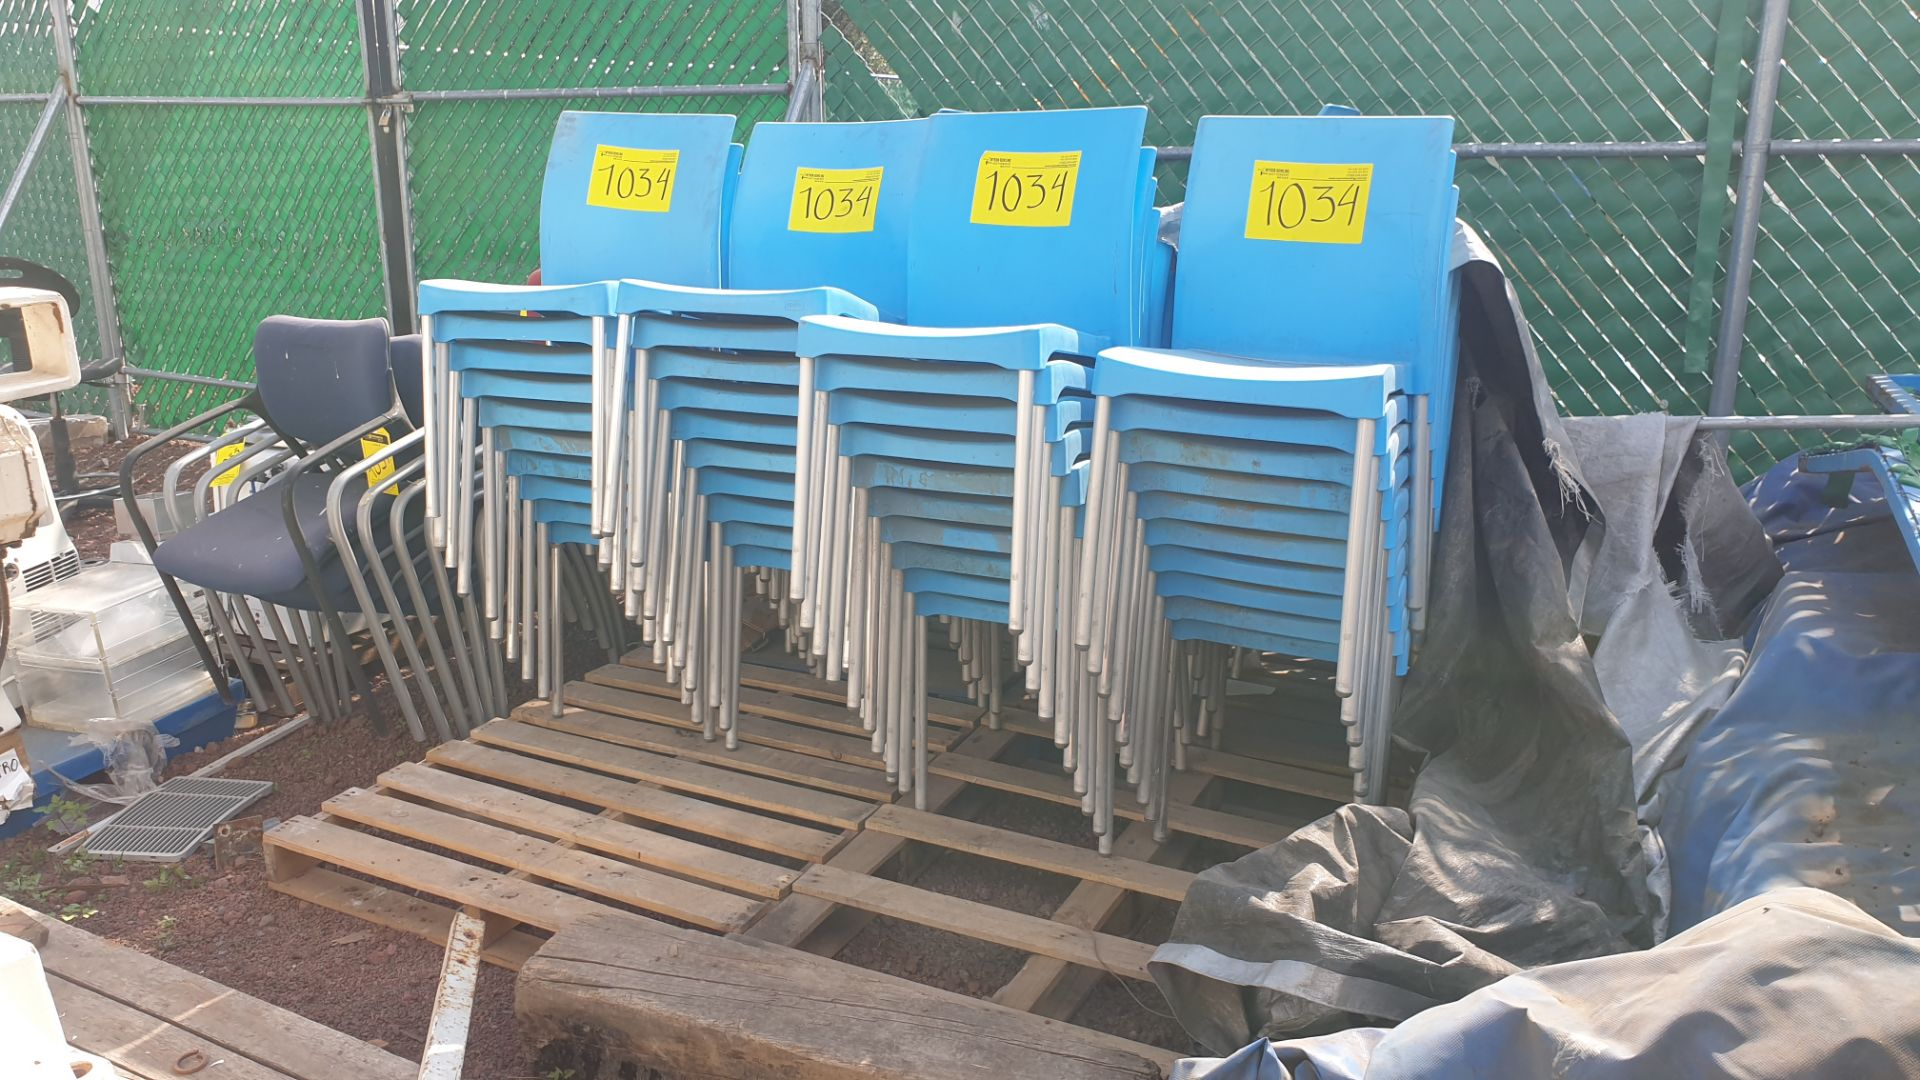 Lot of 40 blue plastic chairs, includes 7 metal office chairs with upholstered back and seat